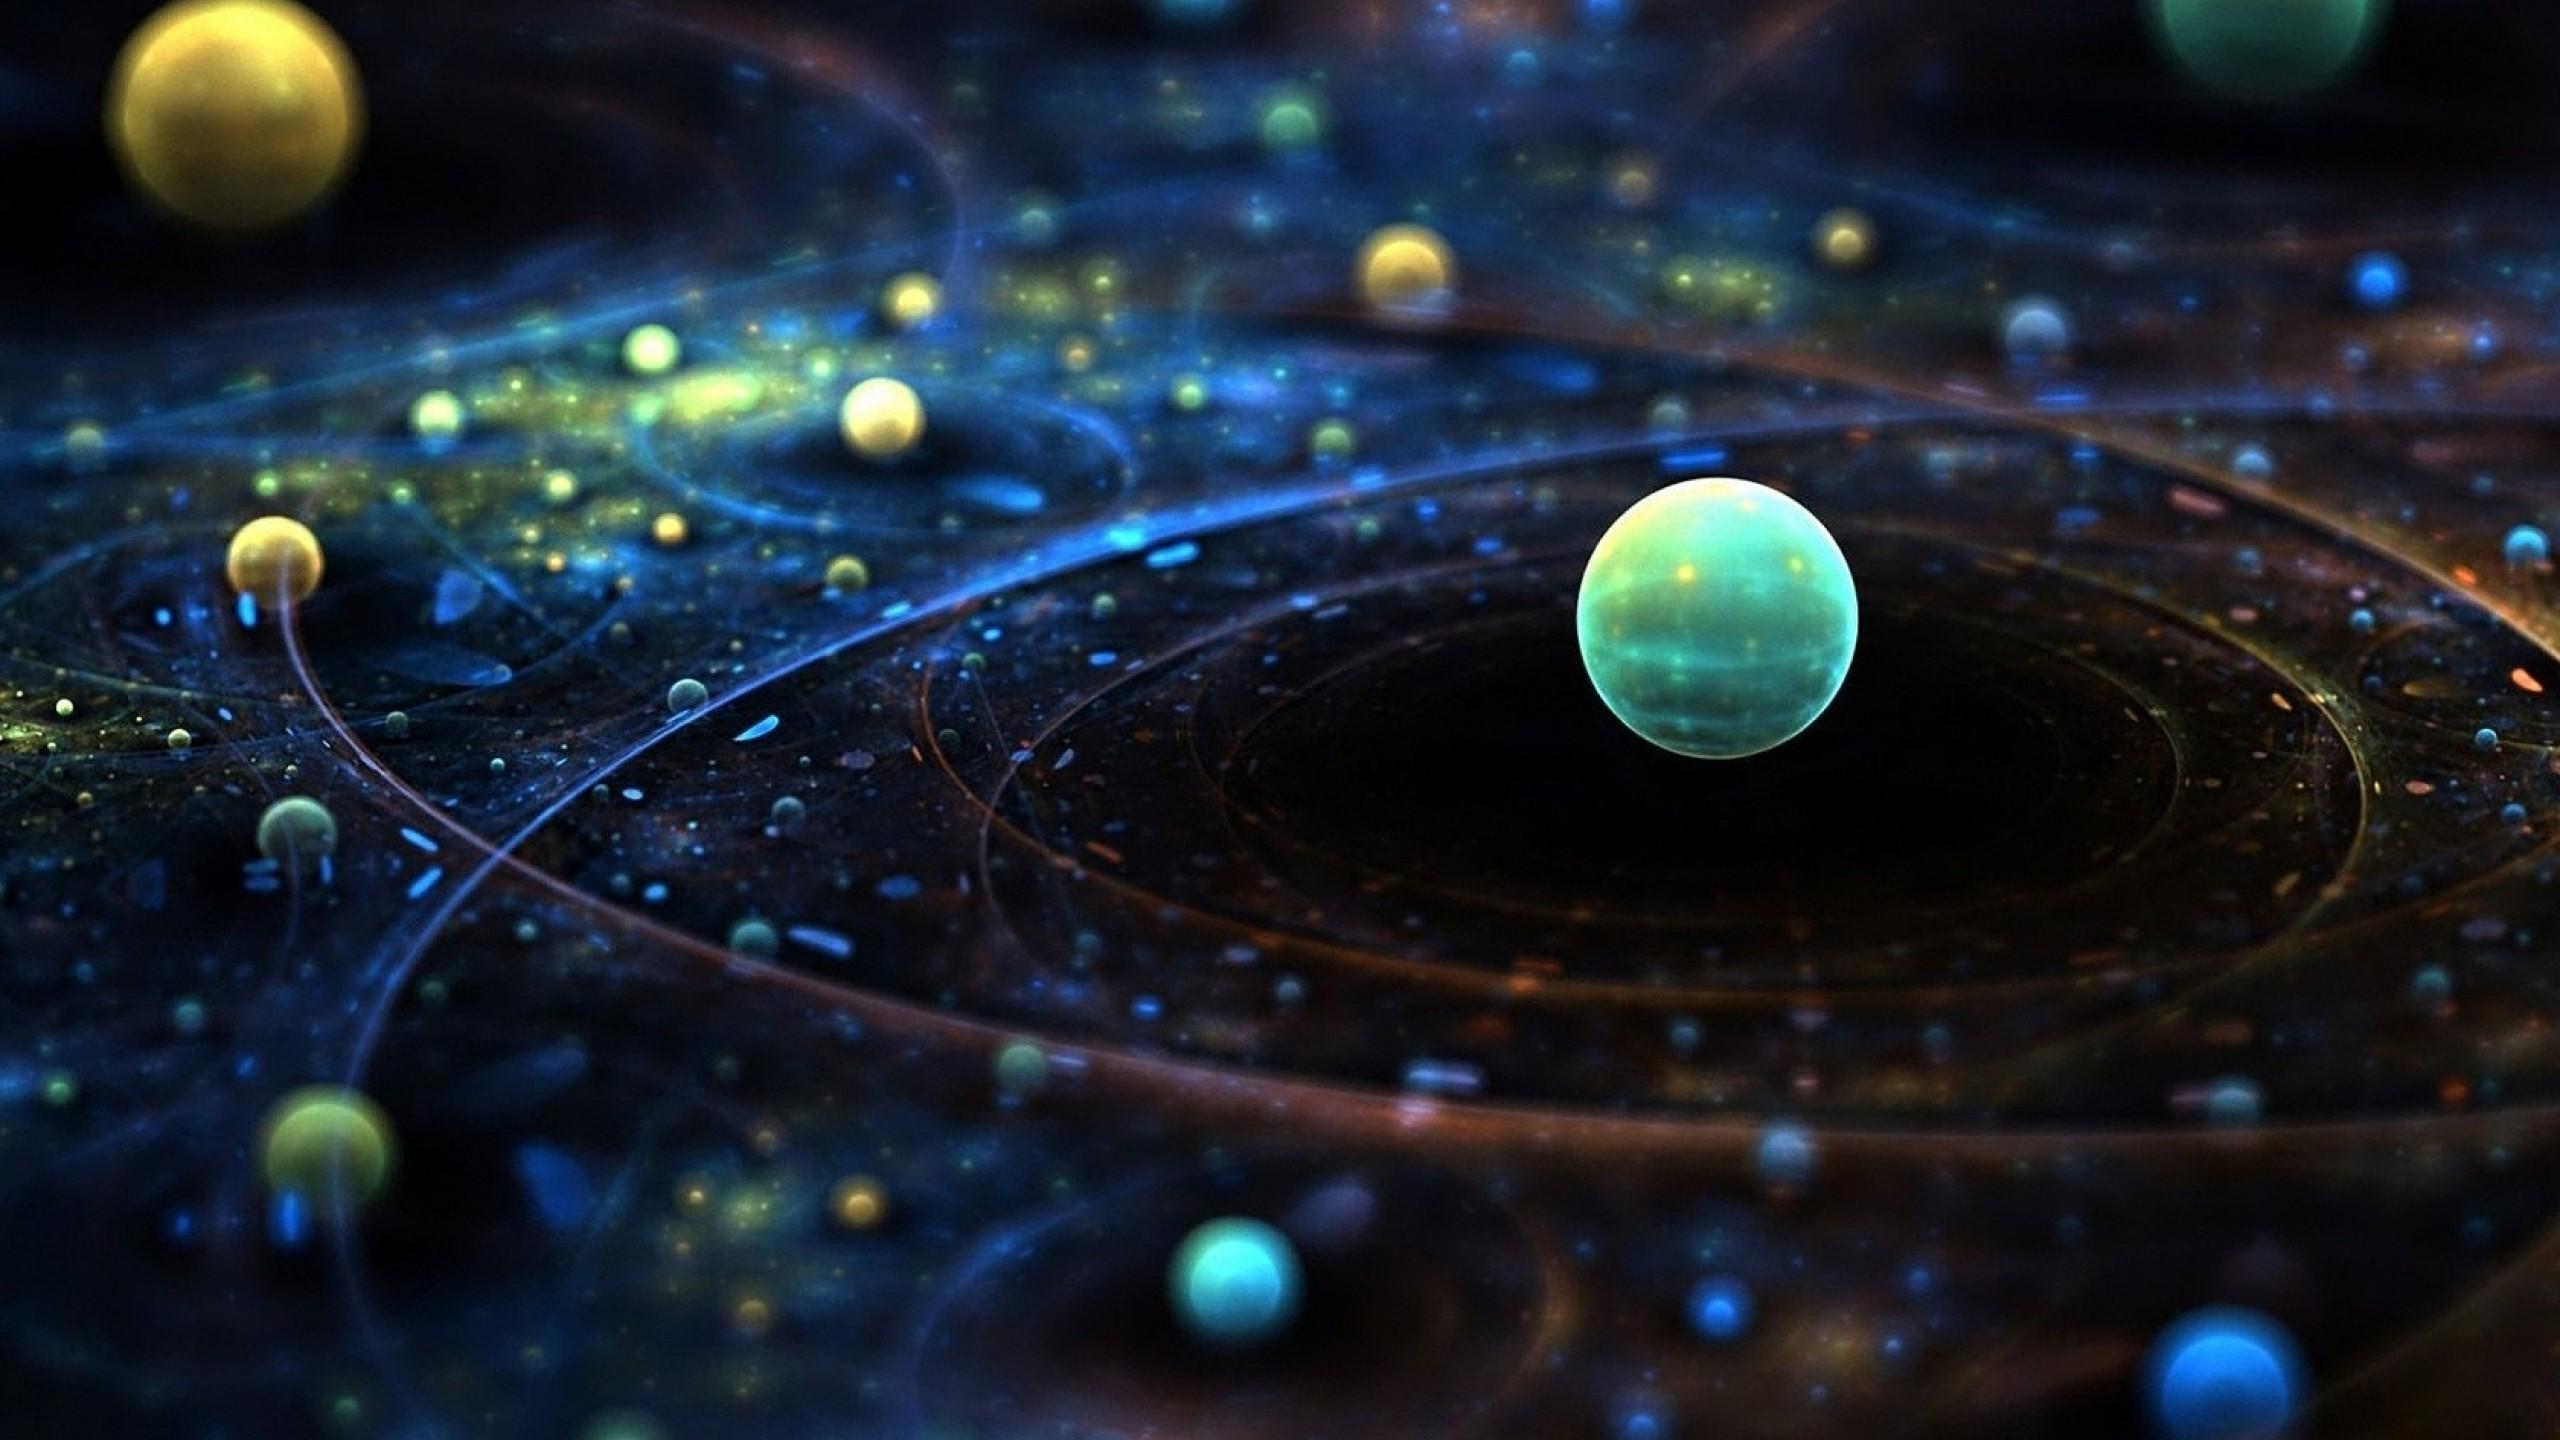 planets of the space - hd macro wallpaper wallpaper download 2560x1440